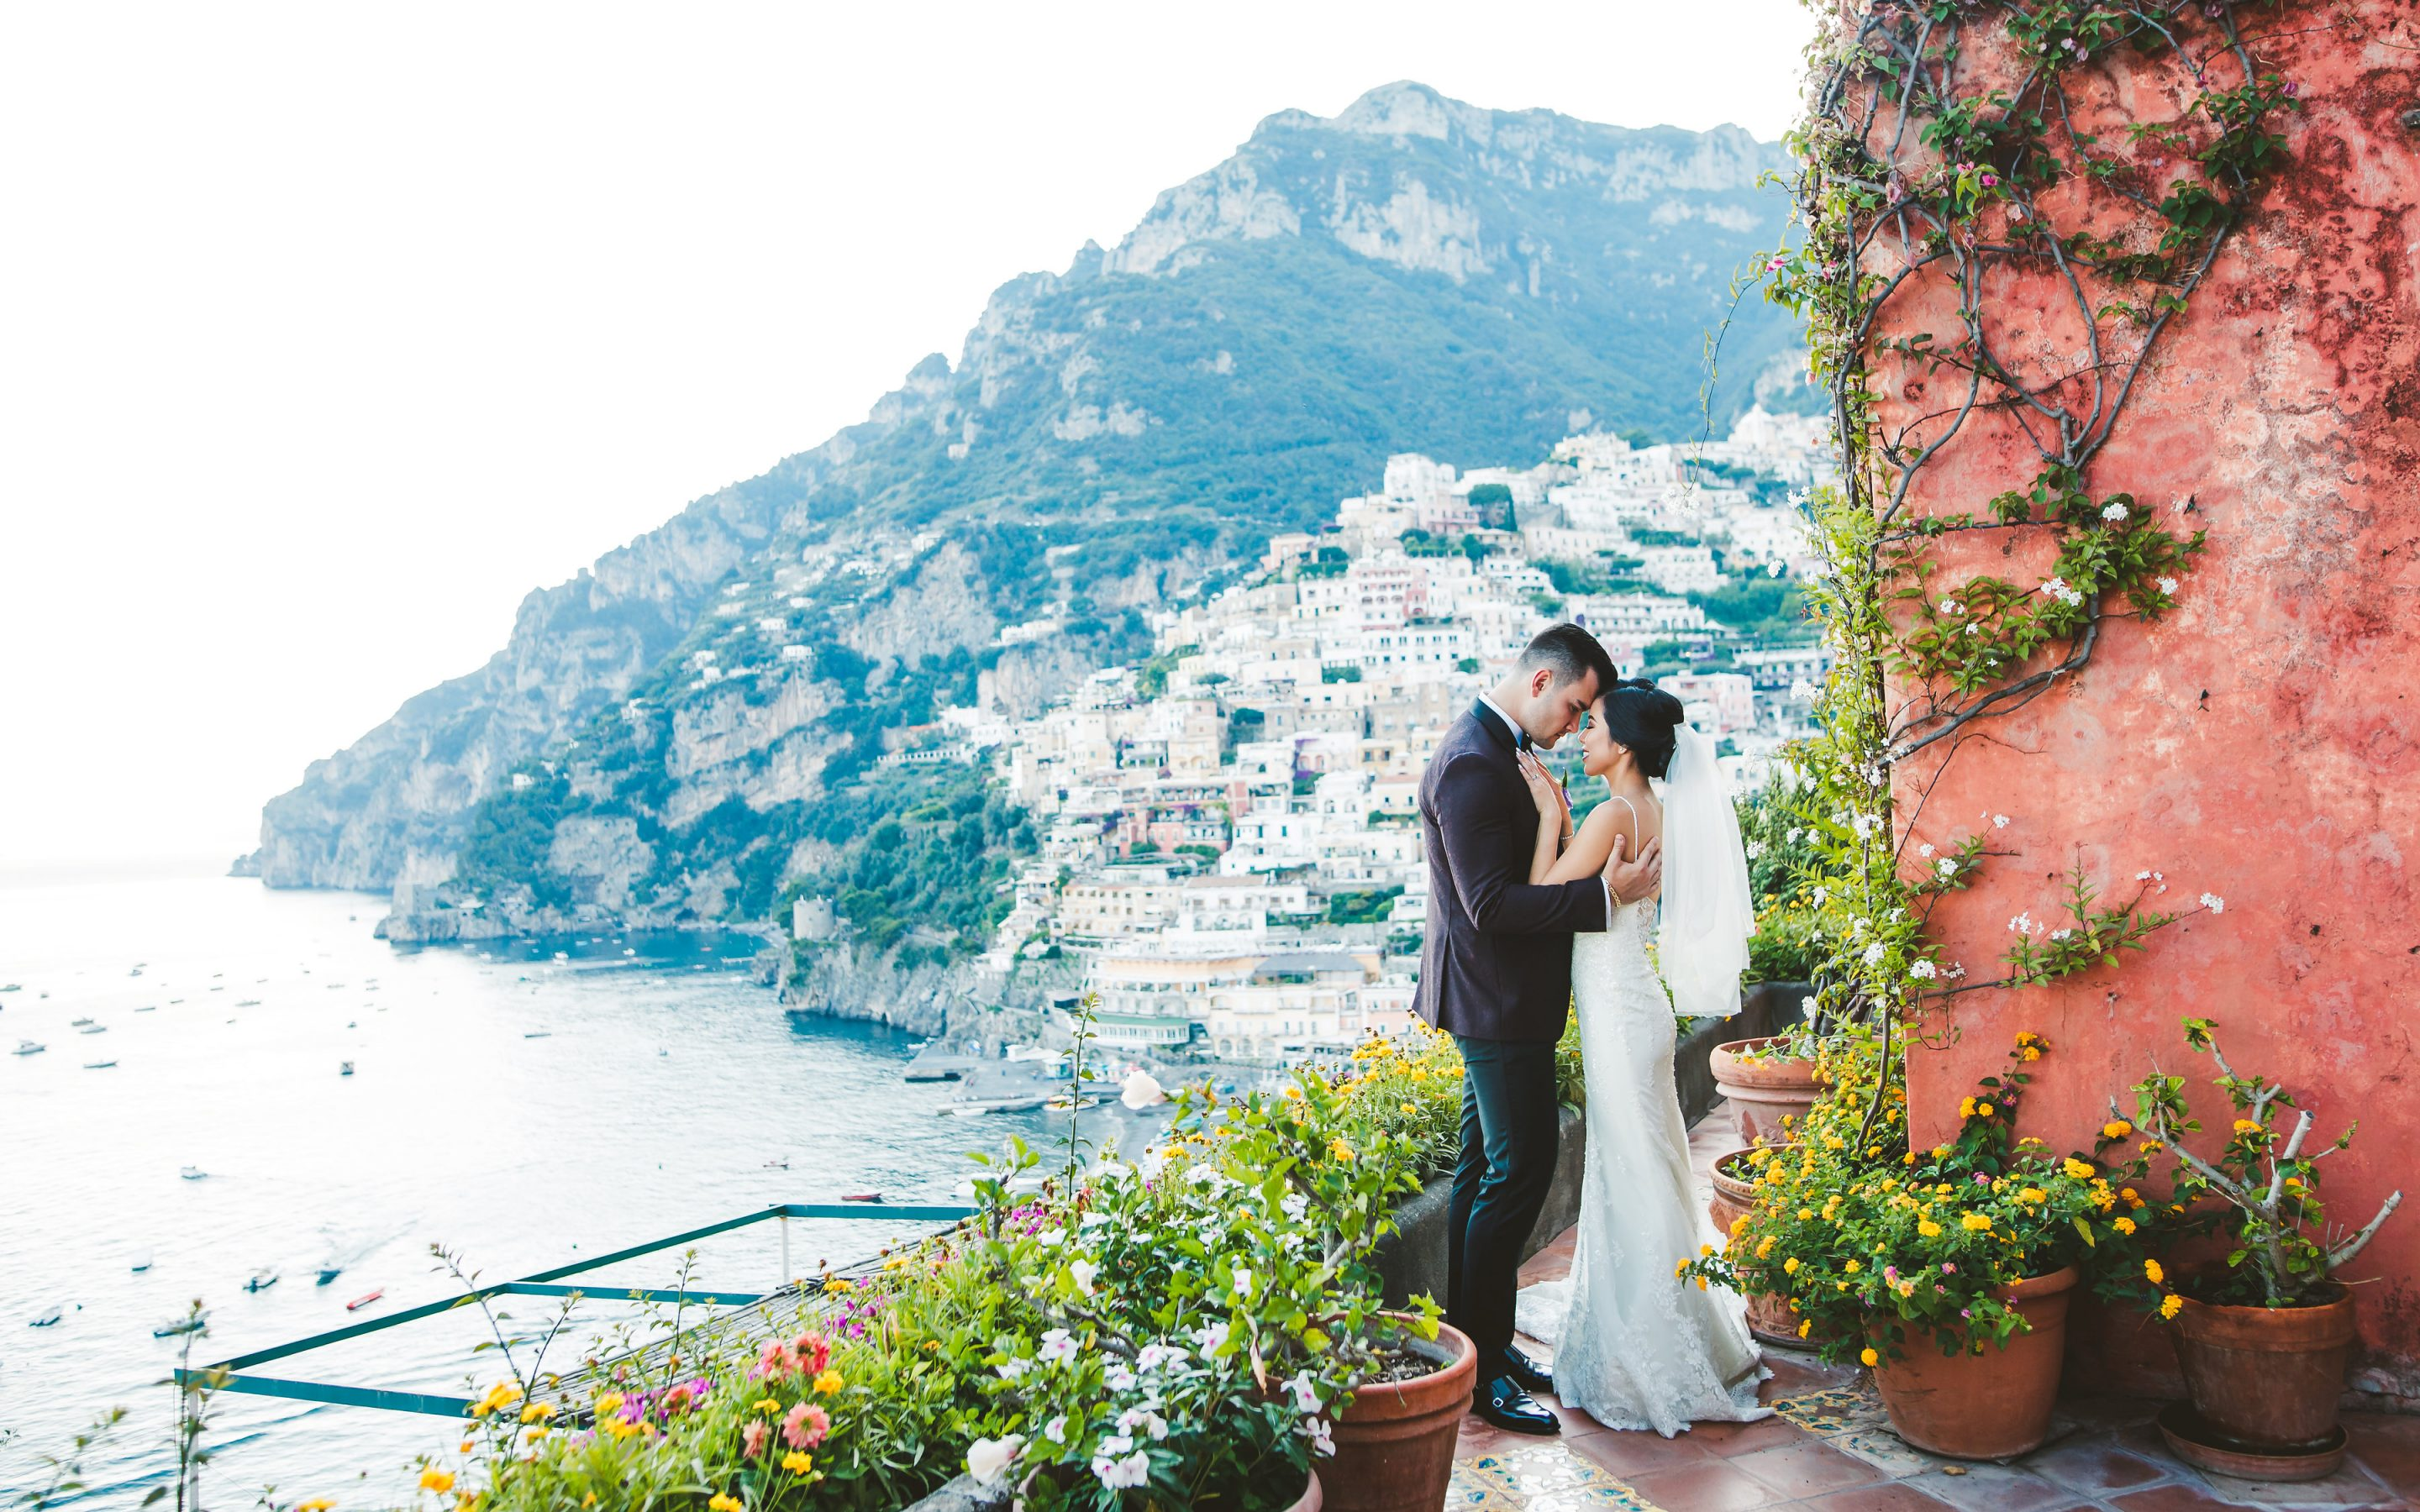 Tea ceremony & destination wedding at Positano